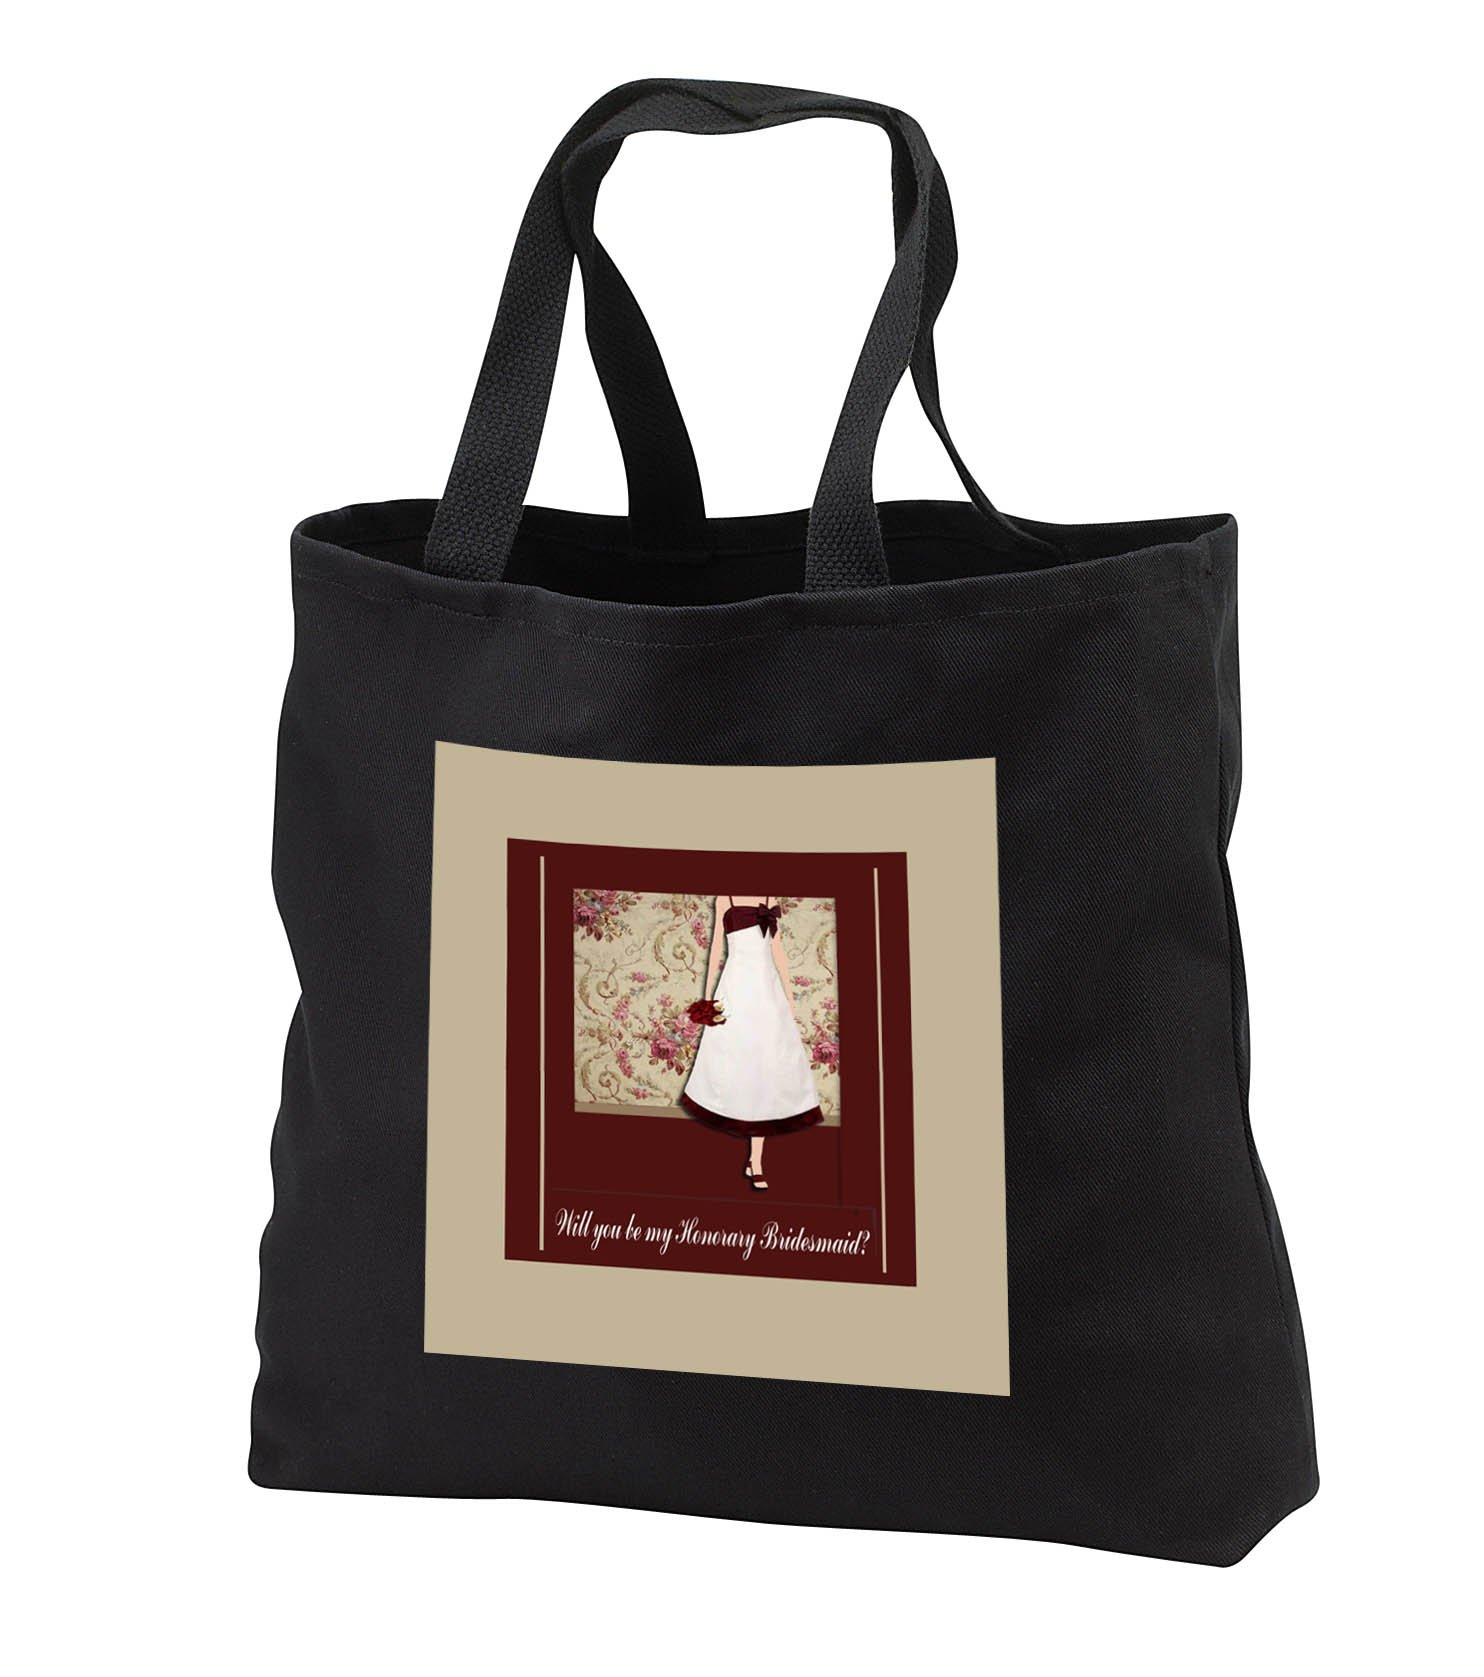 Beverly Turner Wedding Bridal Party Design - Honorary Bridesmaid Request, Lady with Bouquet, Roses Background, Red - Tote Bags - Black Tote Bag 14w x 14h x 3d (tb_282207_1)